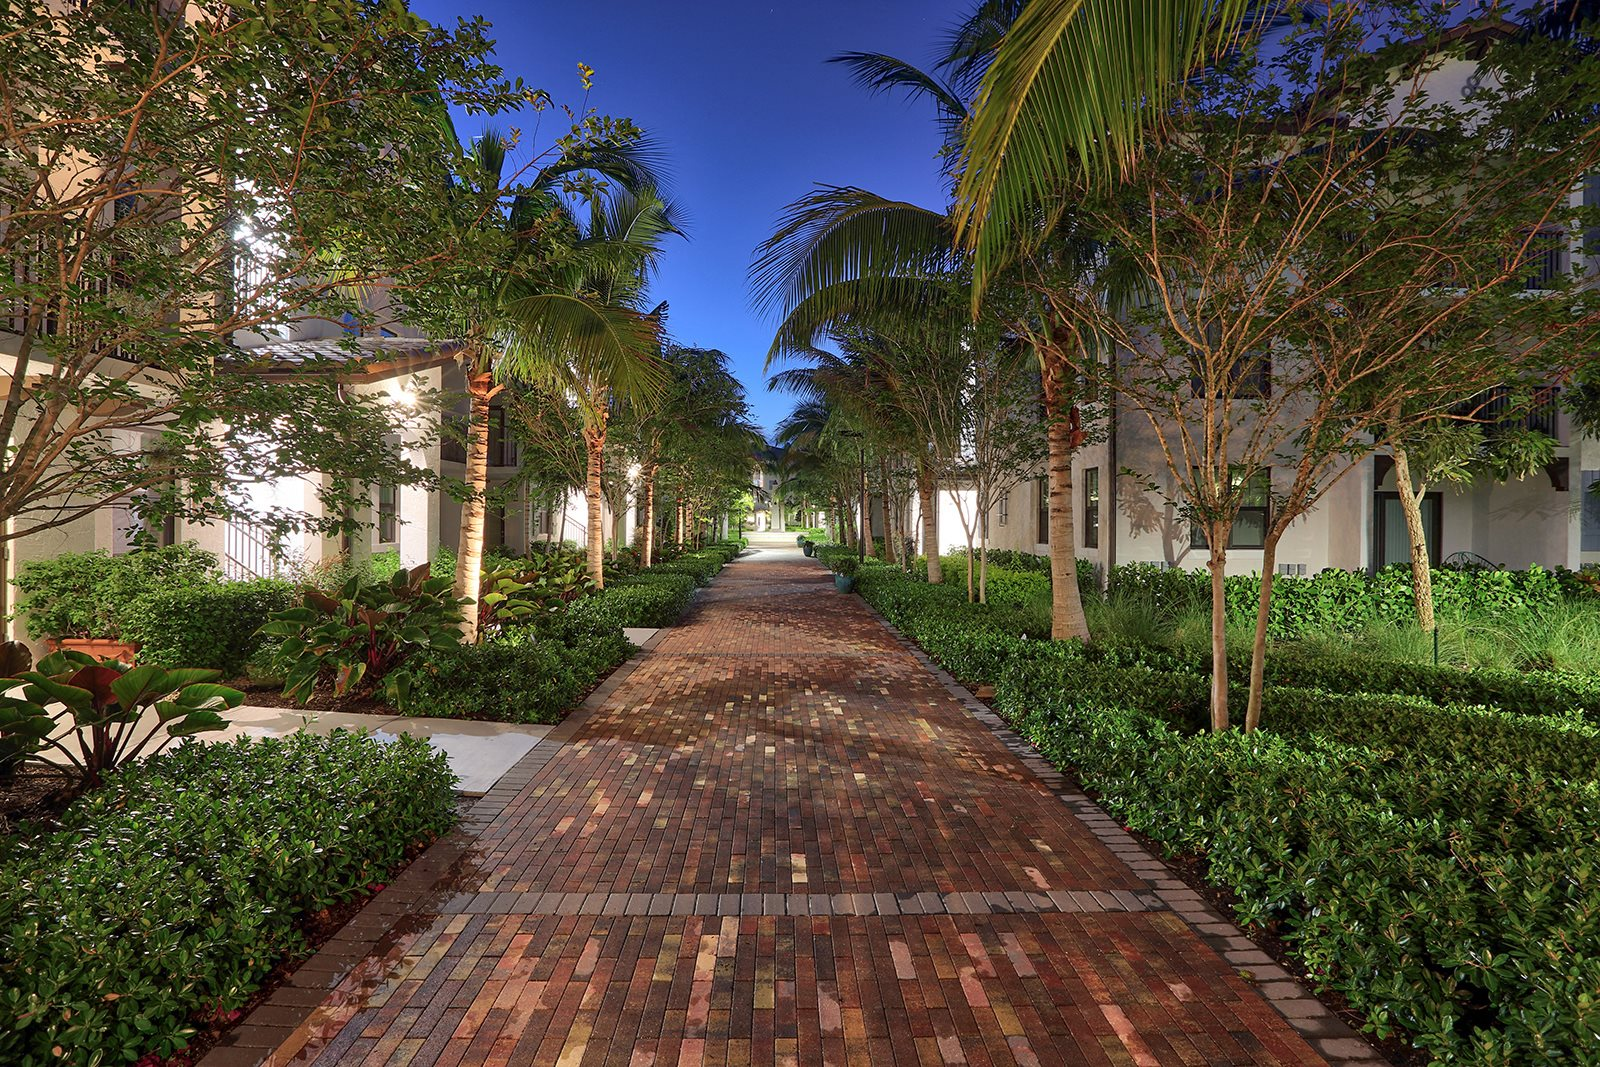 Enjoy a relaxing walk through the Windsor at Delray Beach promenade at Windsor at Delray Beach, Delray Beach